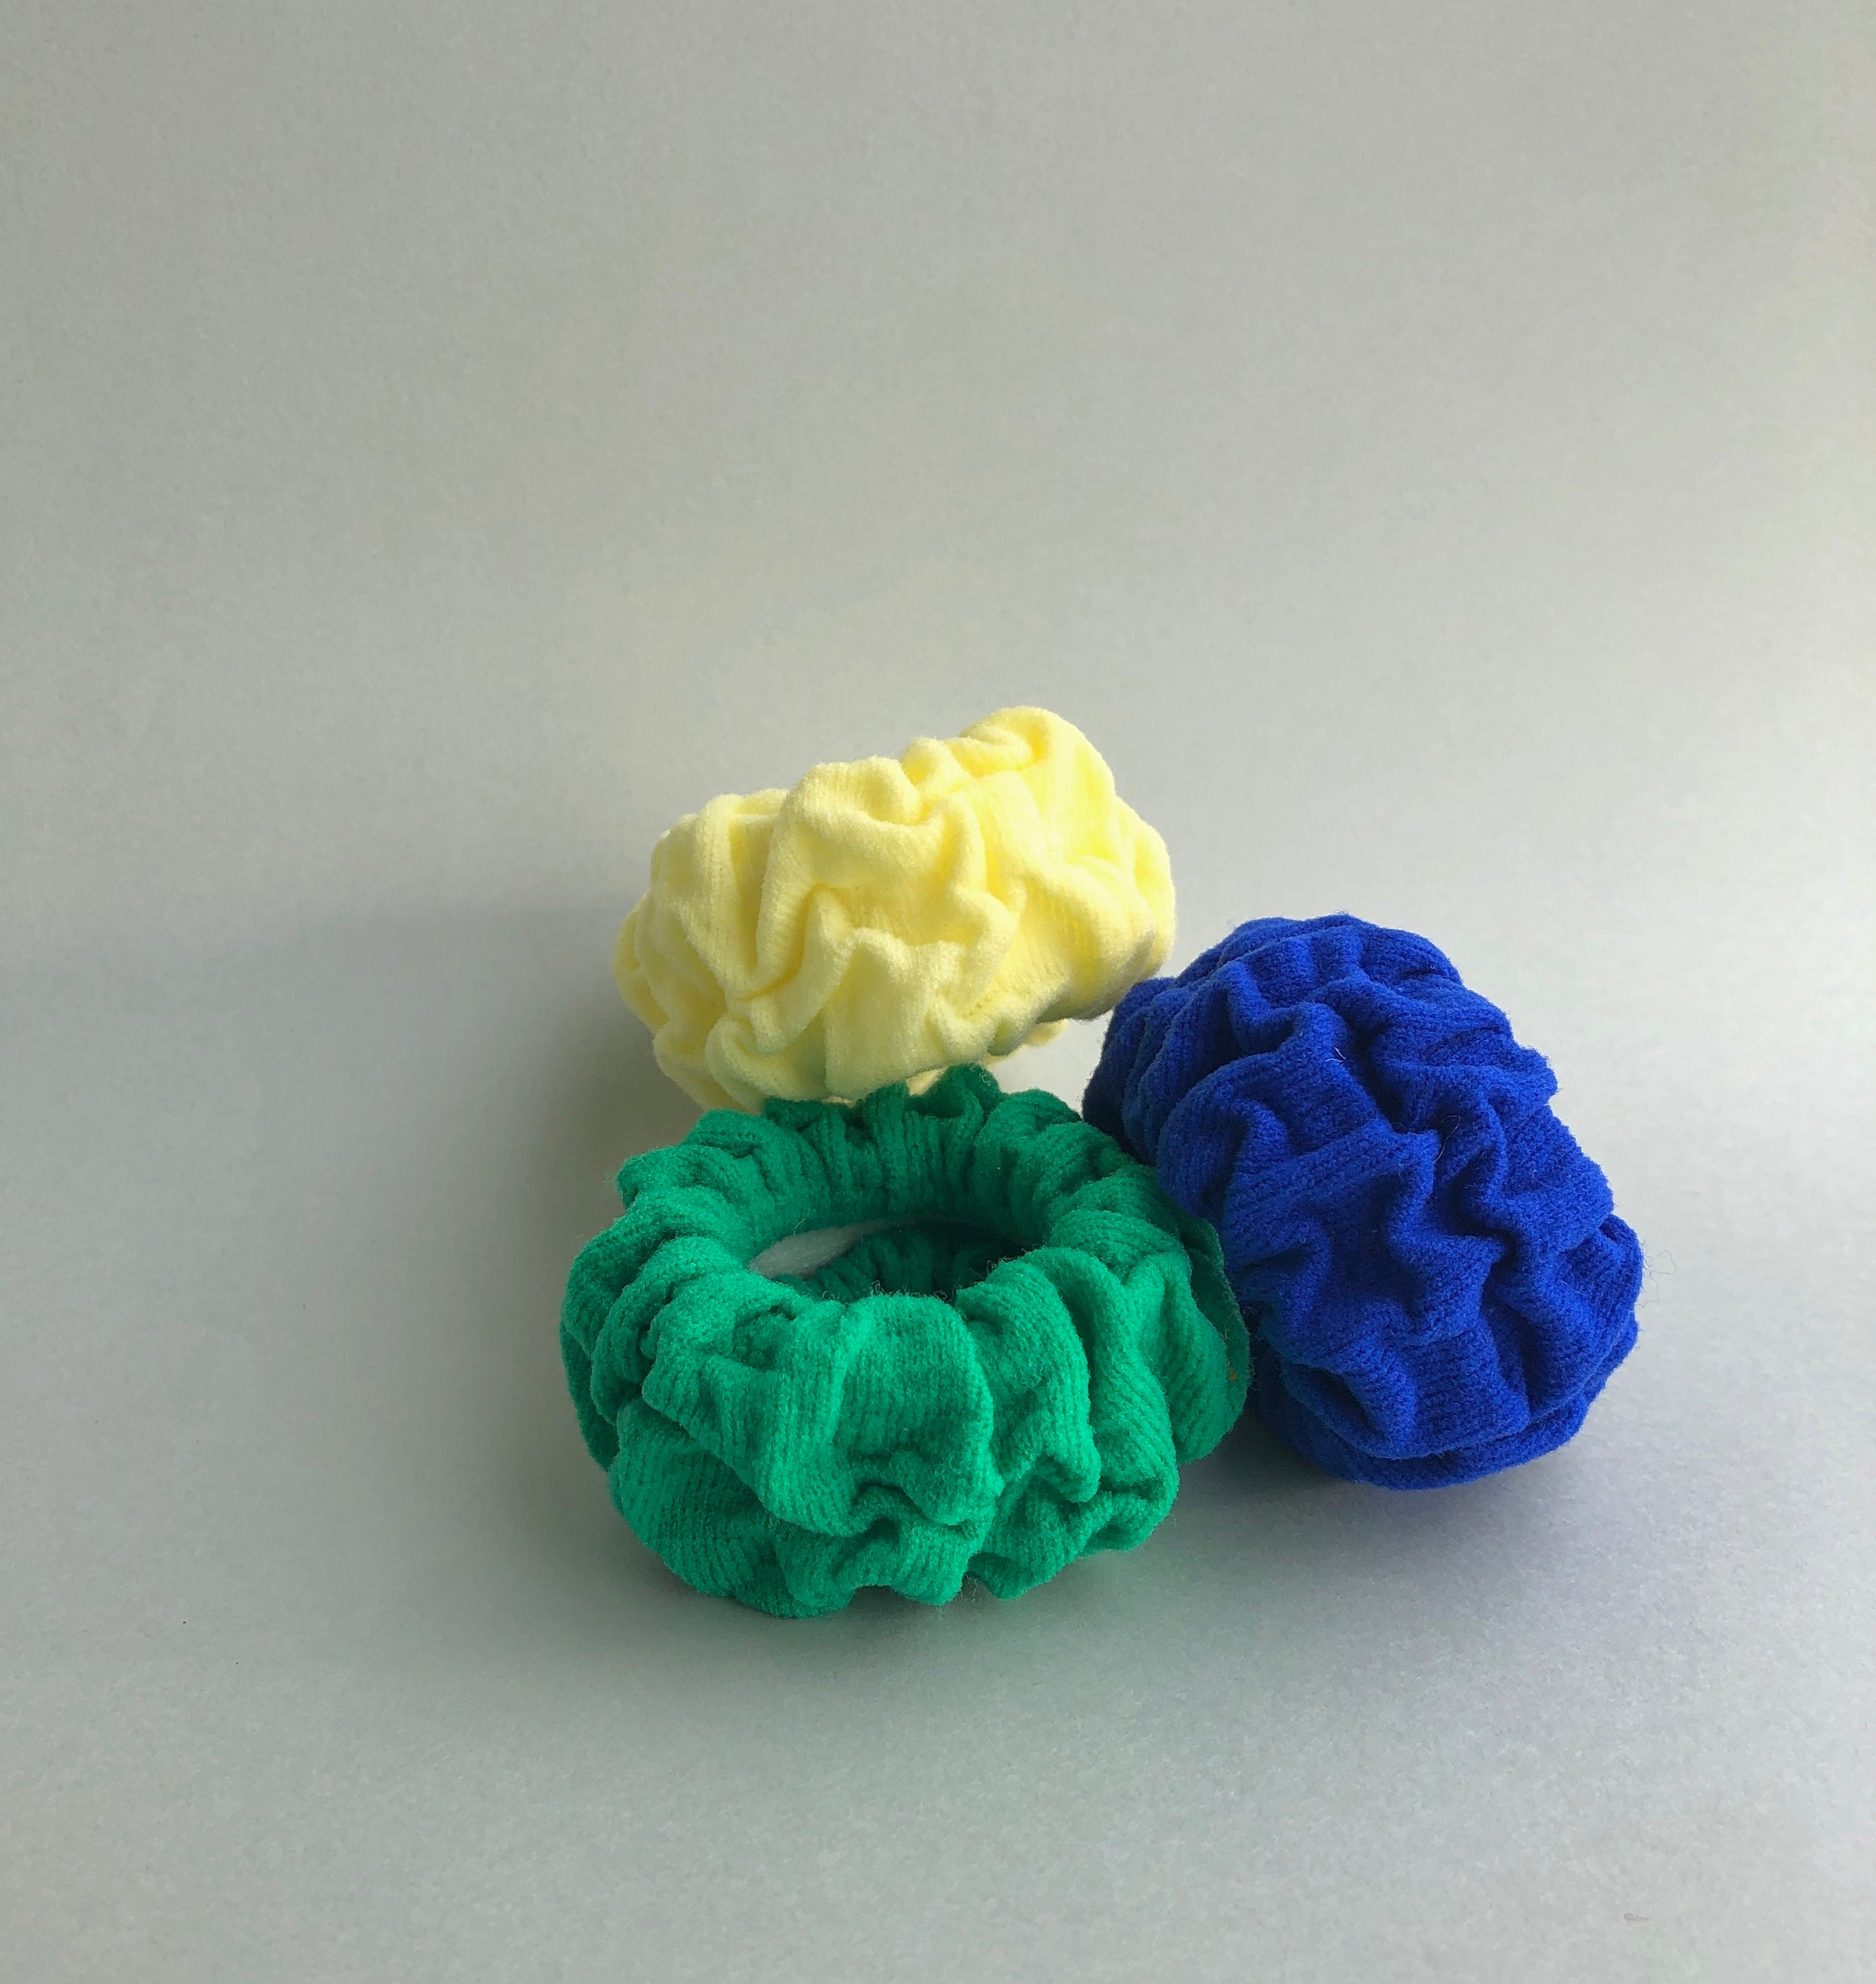 Ultrasoft Microfiber Scrunchies by Veronique